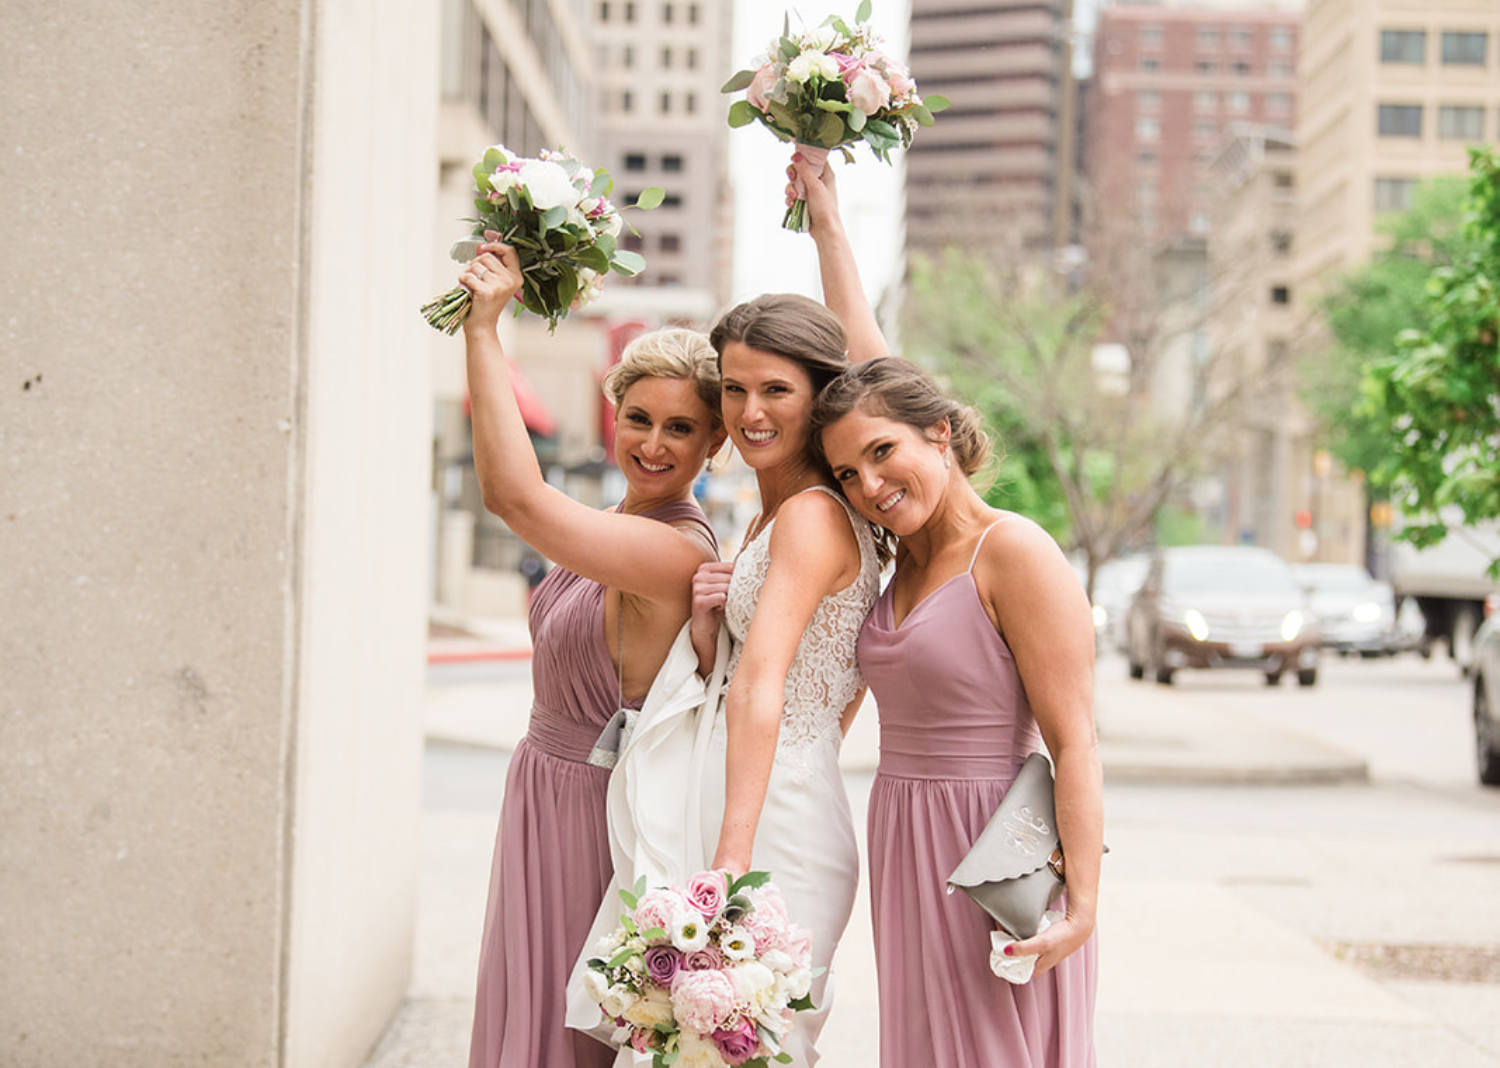 bridesmaids and bride holding their bouquet in the air smiling